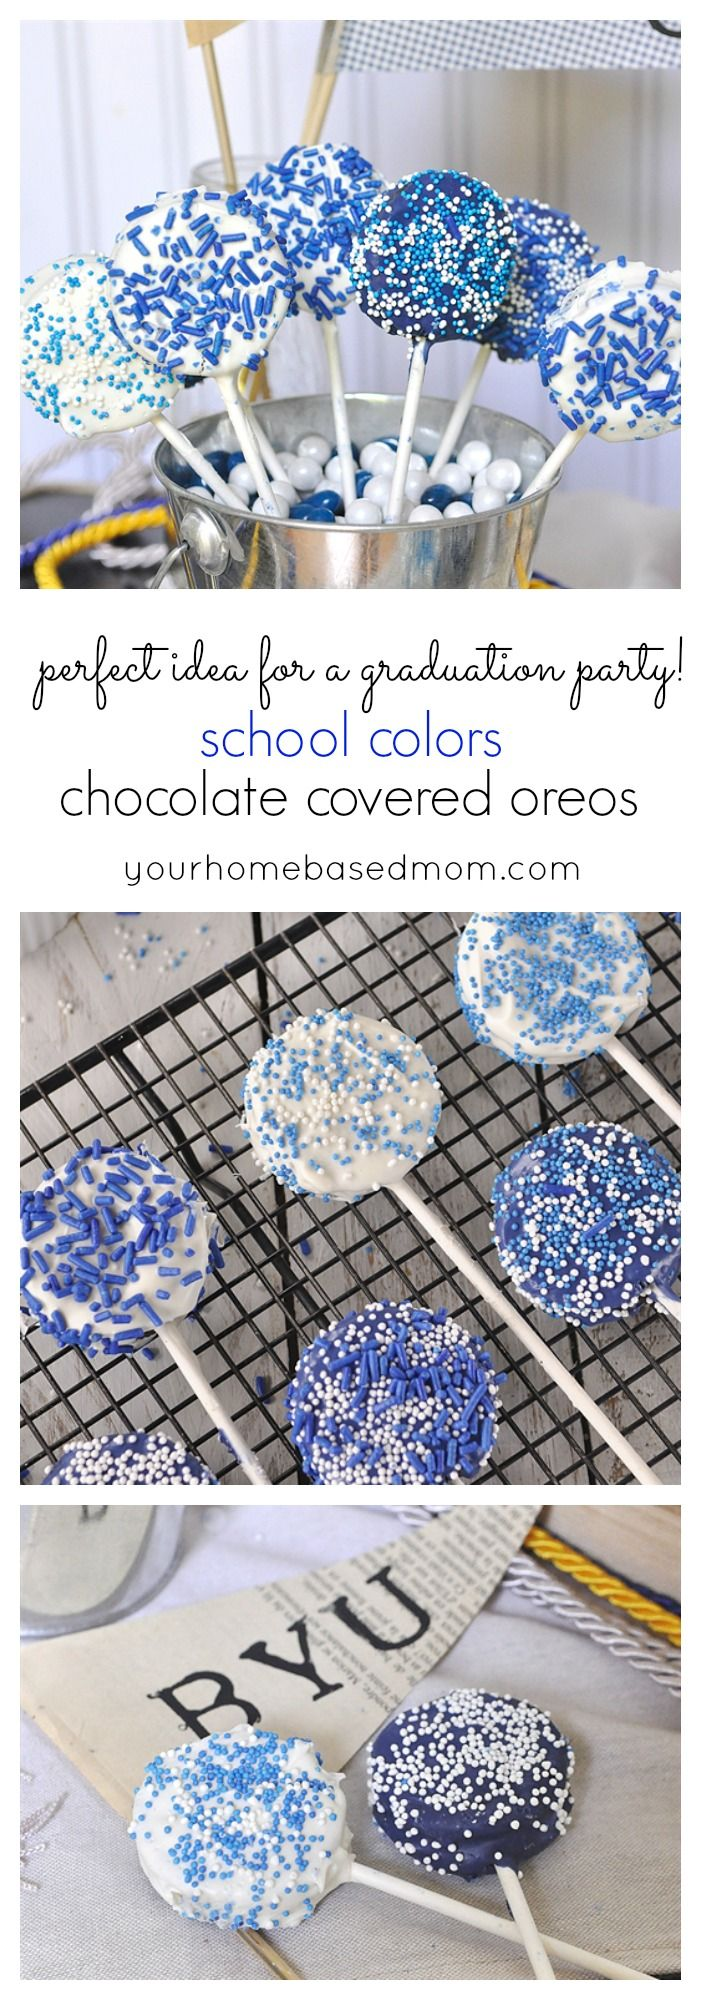 School Color Chocolate Covered Oreos are perfect for your graduation party! Fun graduation party food.